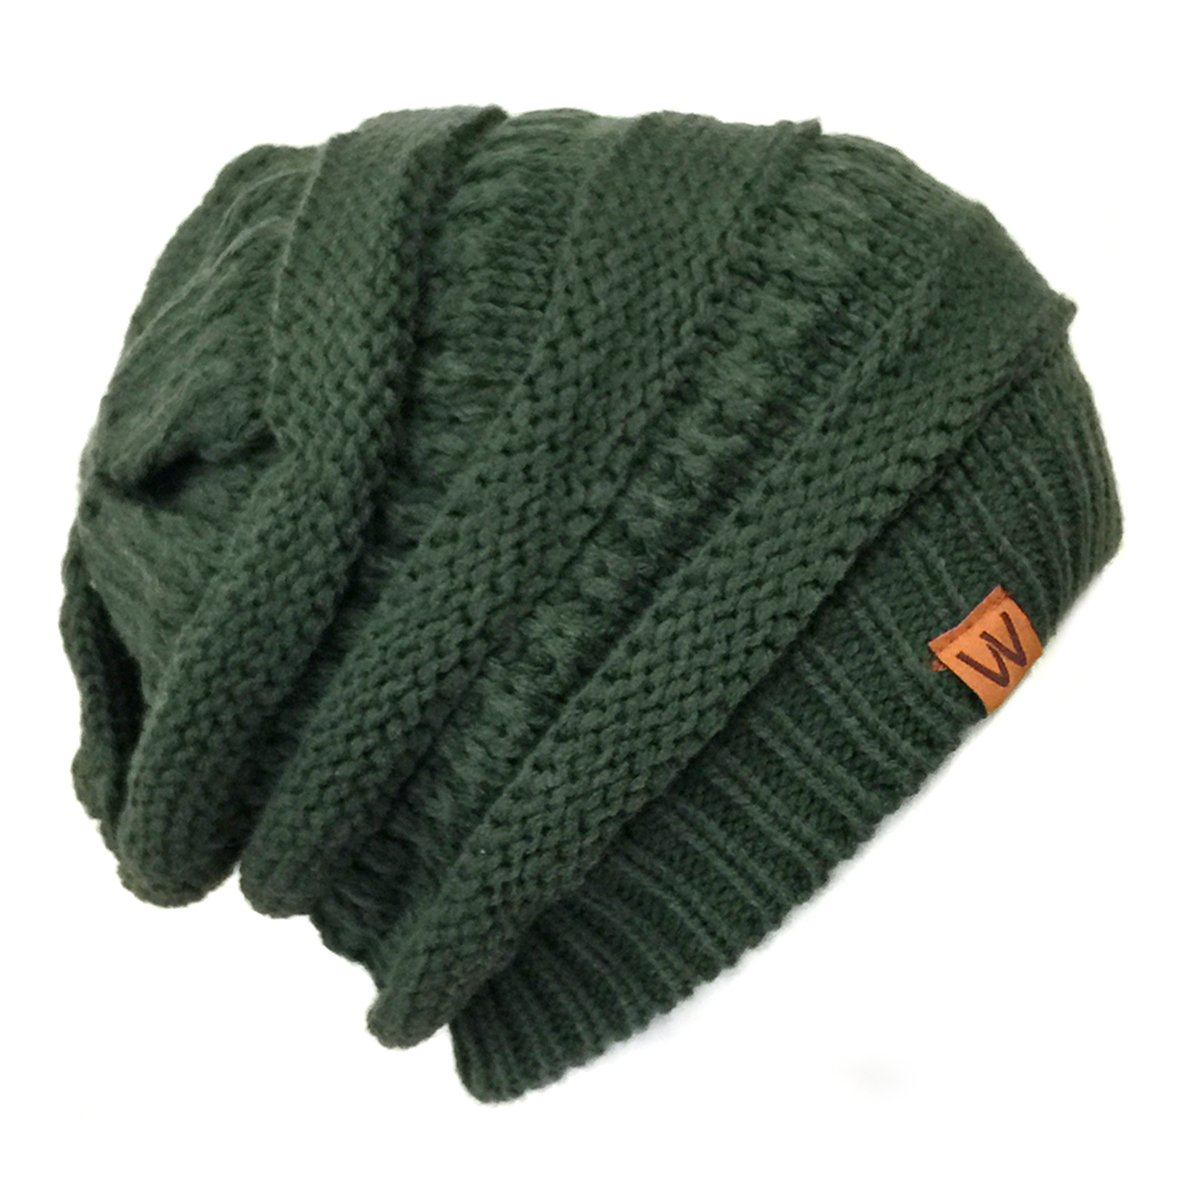 ALLYDREW Winter Thick Knit Beanie Slouchy Beanie for Men & Women Black